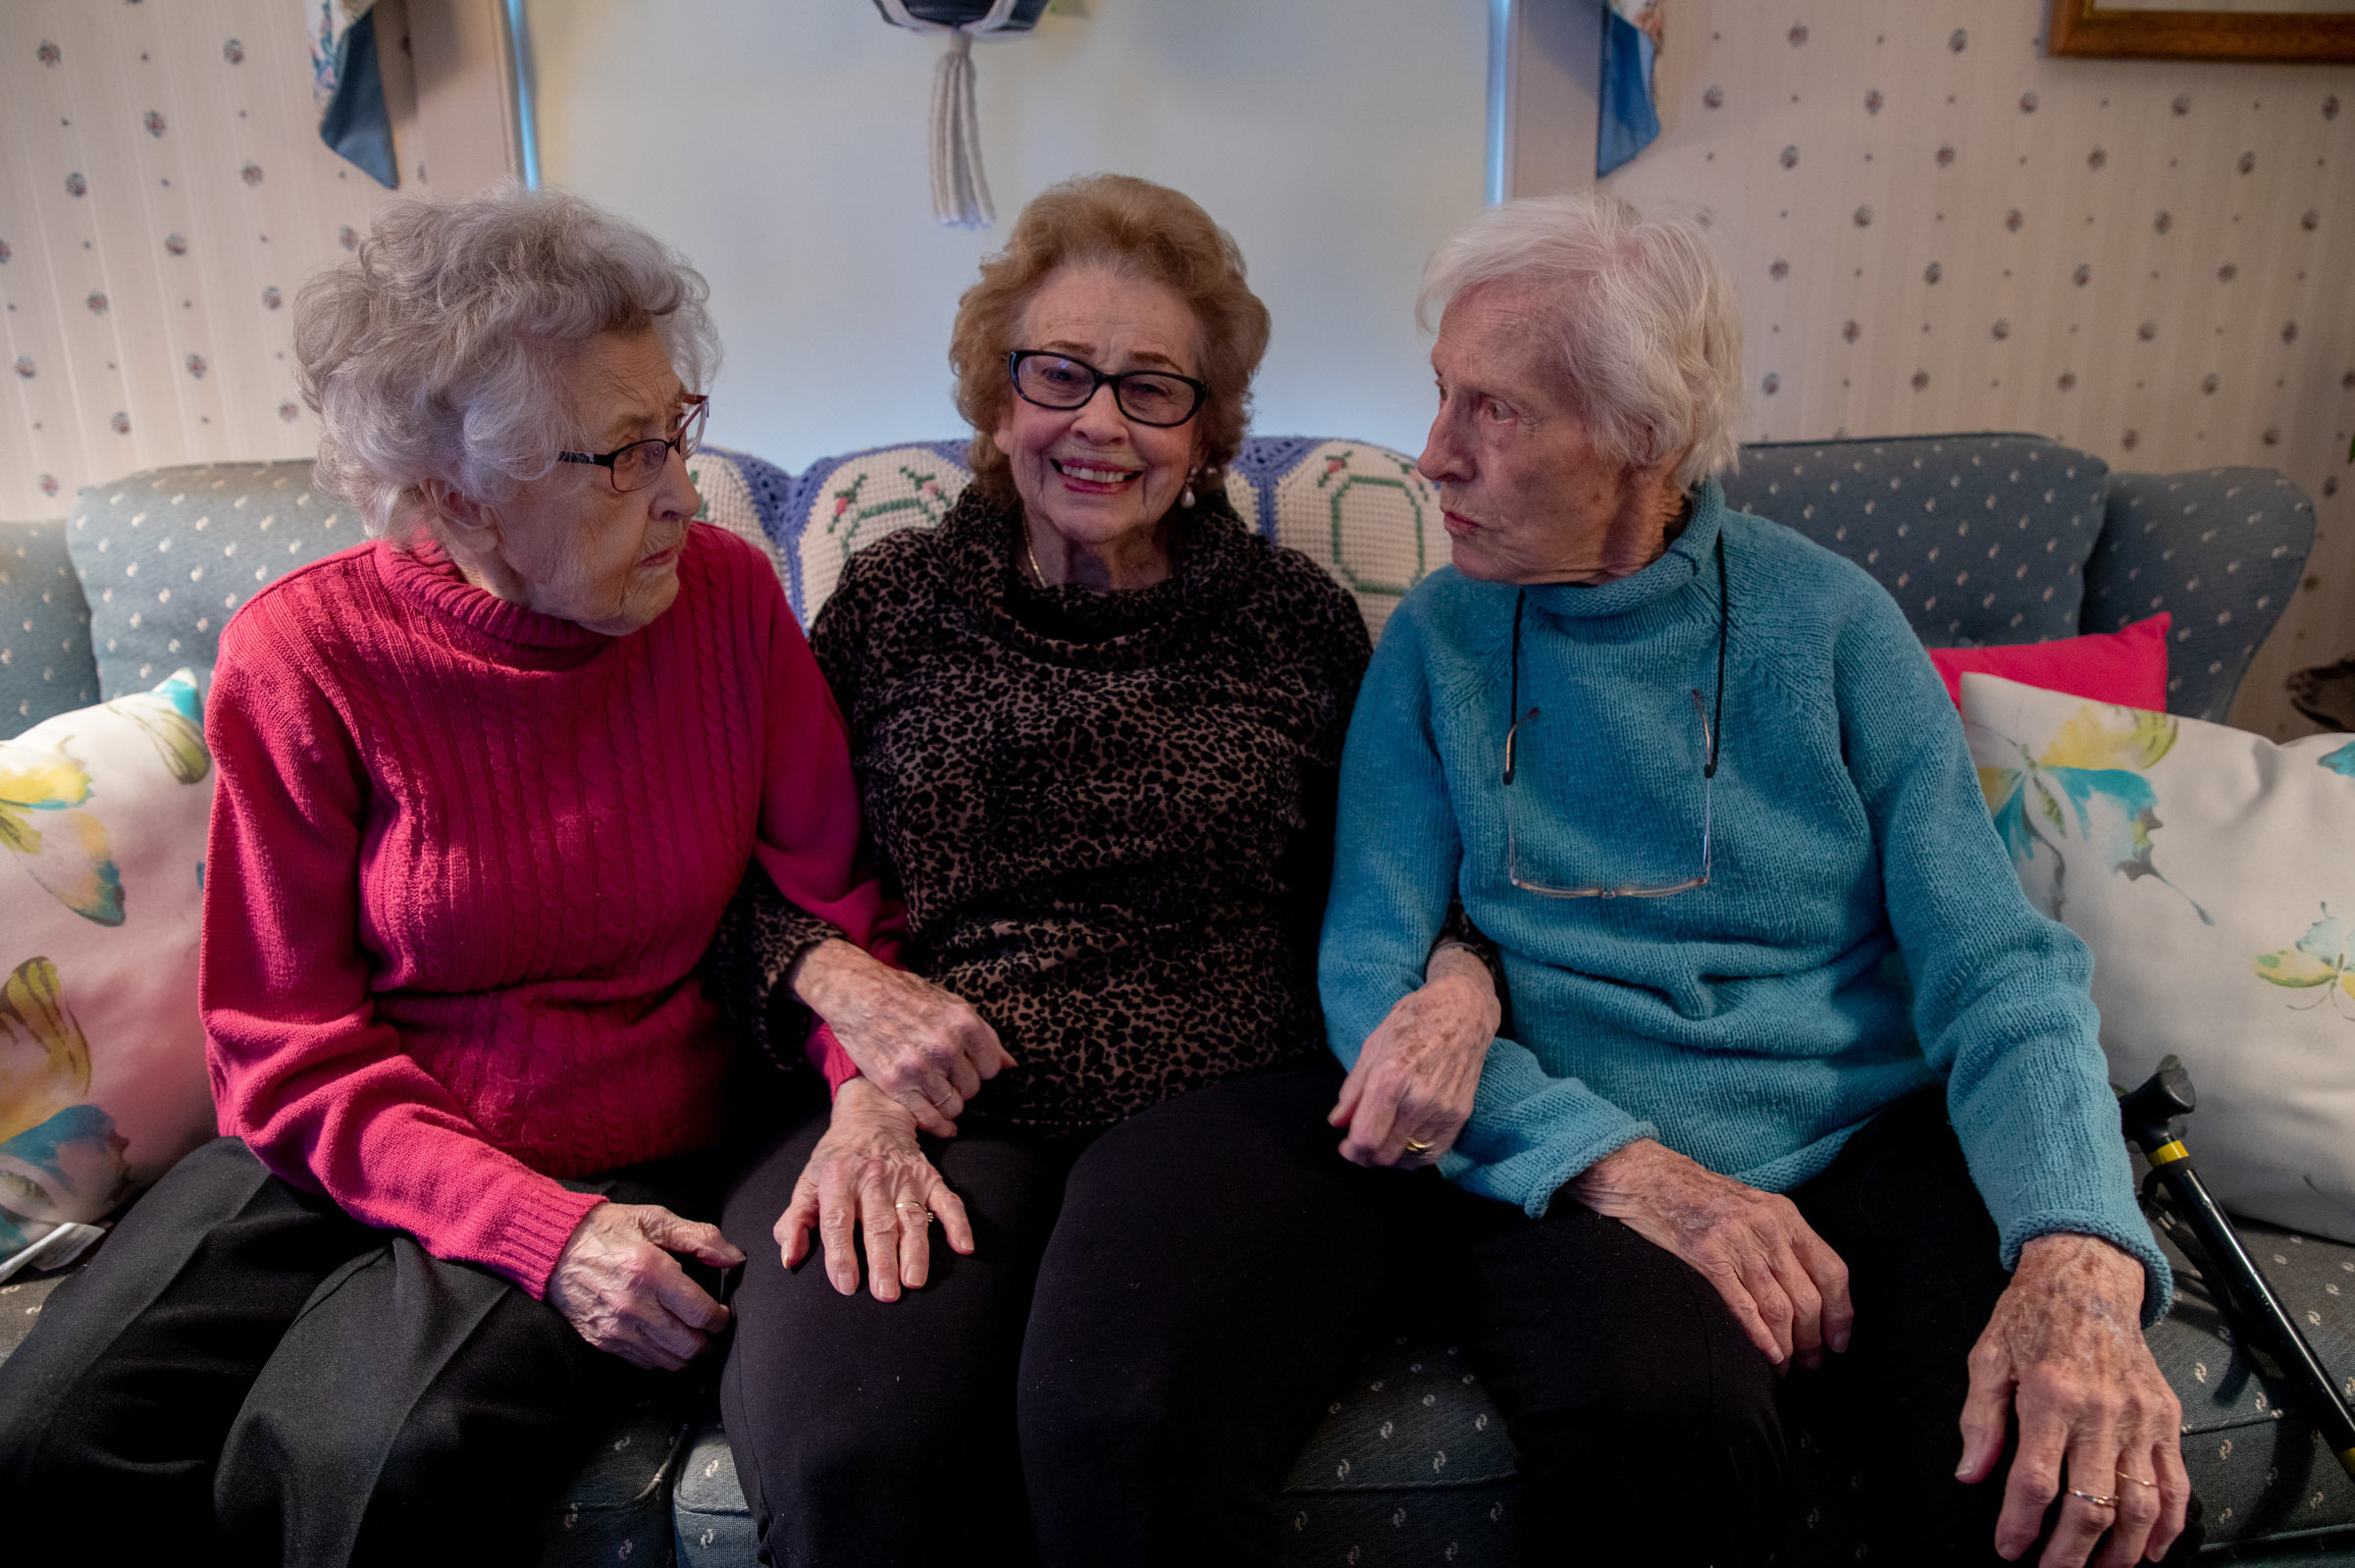 For These '3 Dots,' 100 Years Of Friendship, Fellowship And Fun